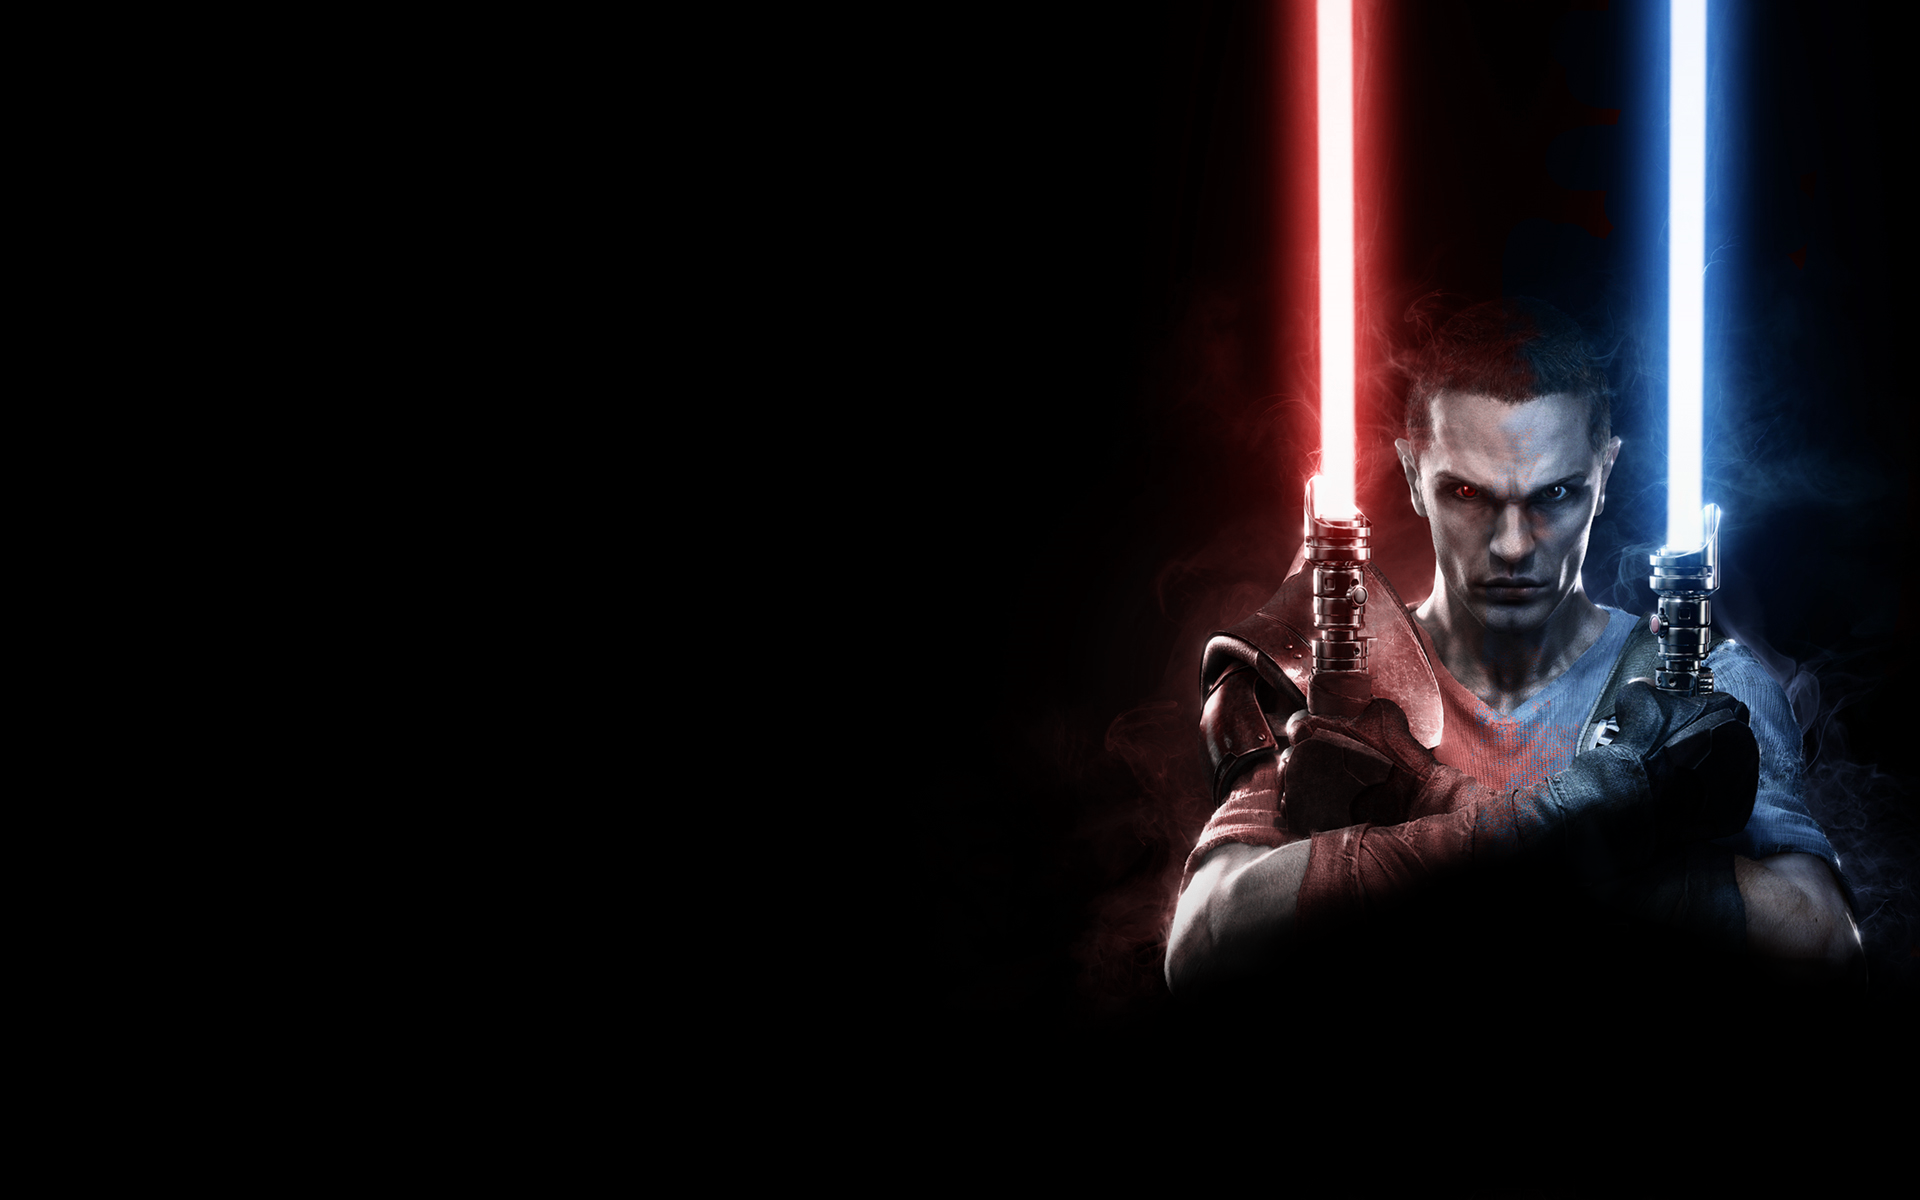 Free Download Force For Both Wallpapers Force For Both Hd